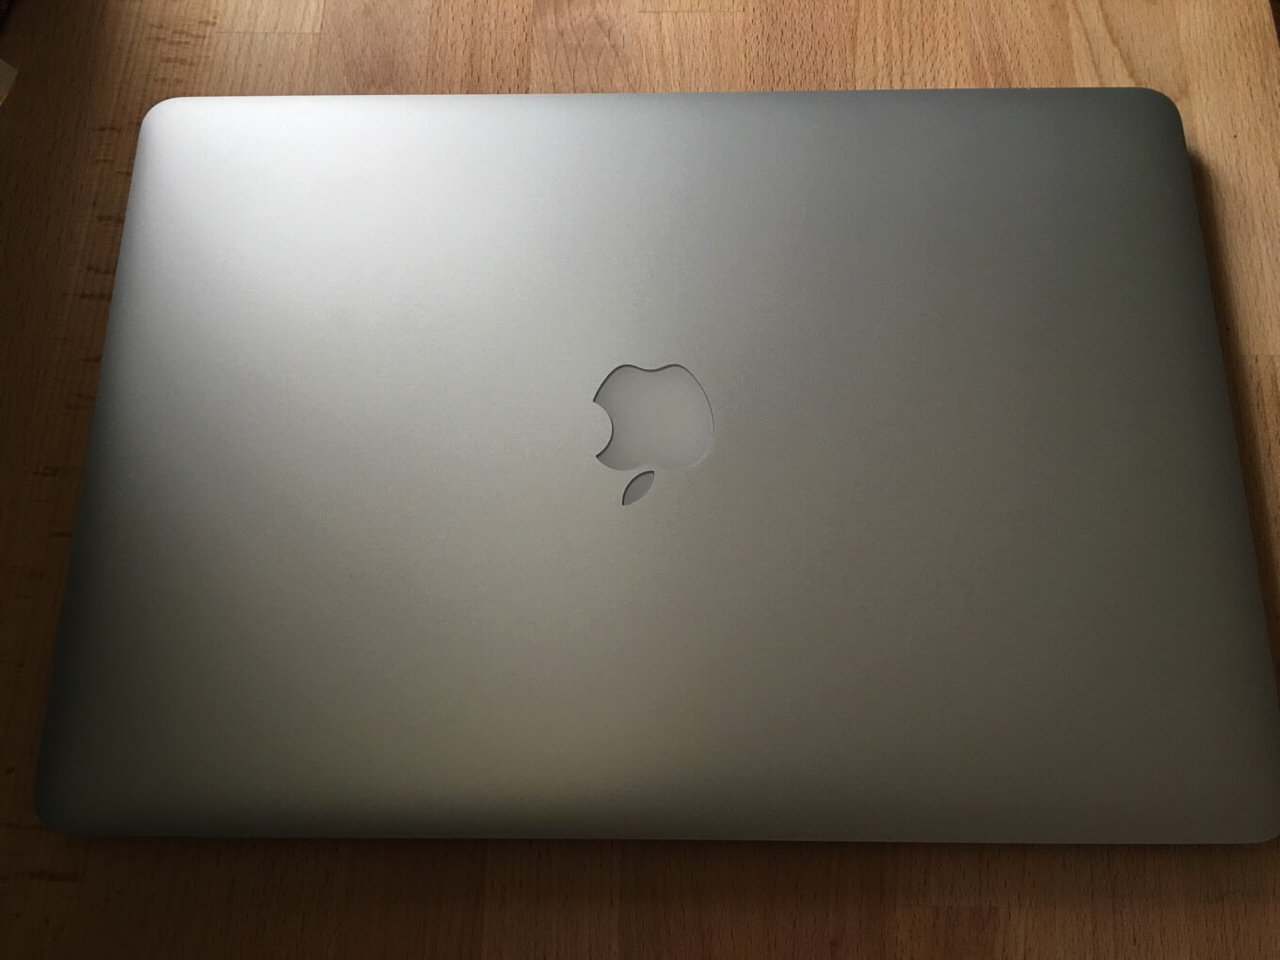 macbook-pro-retina-15-2015mid-open-10.JPG